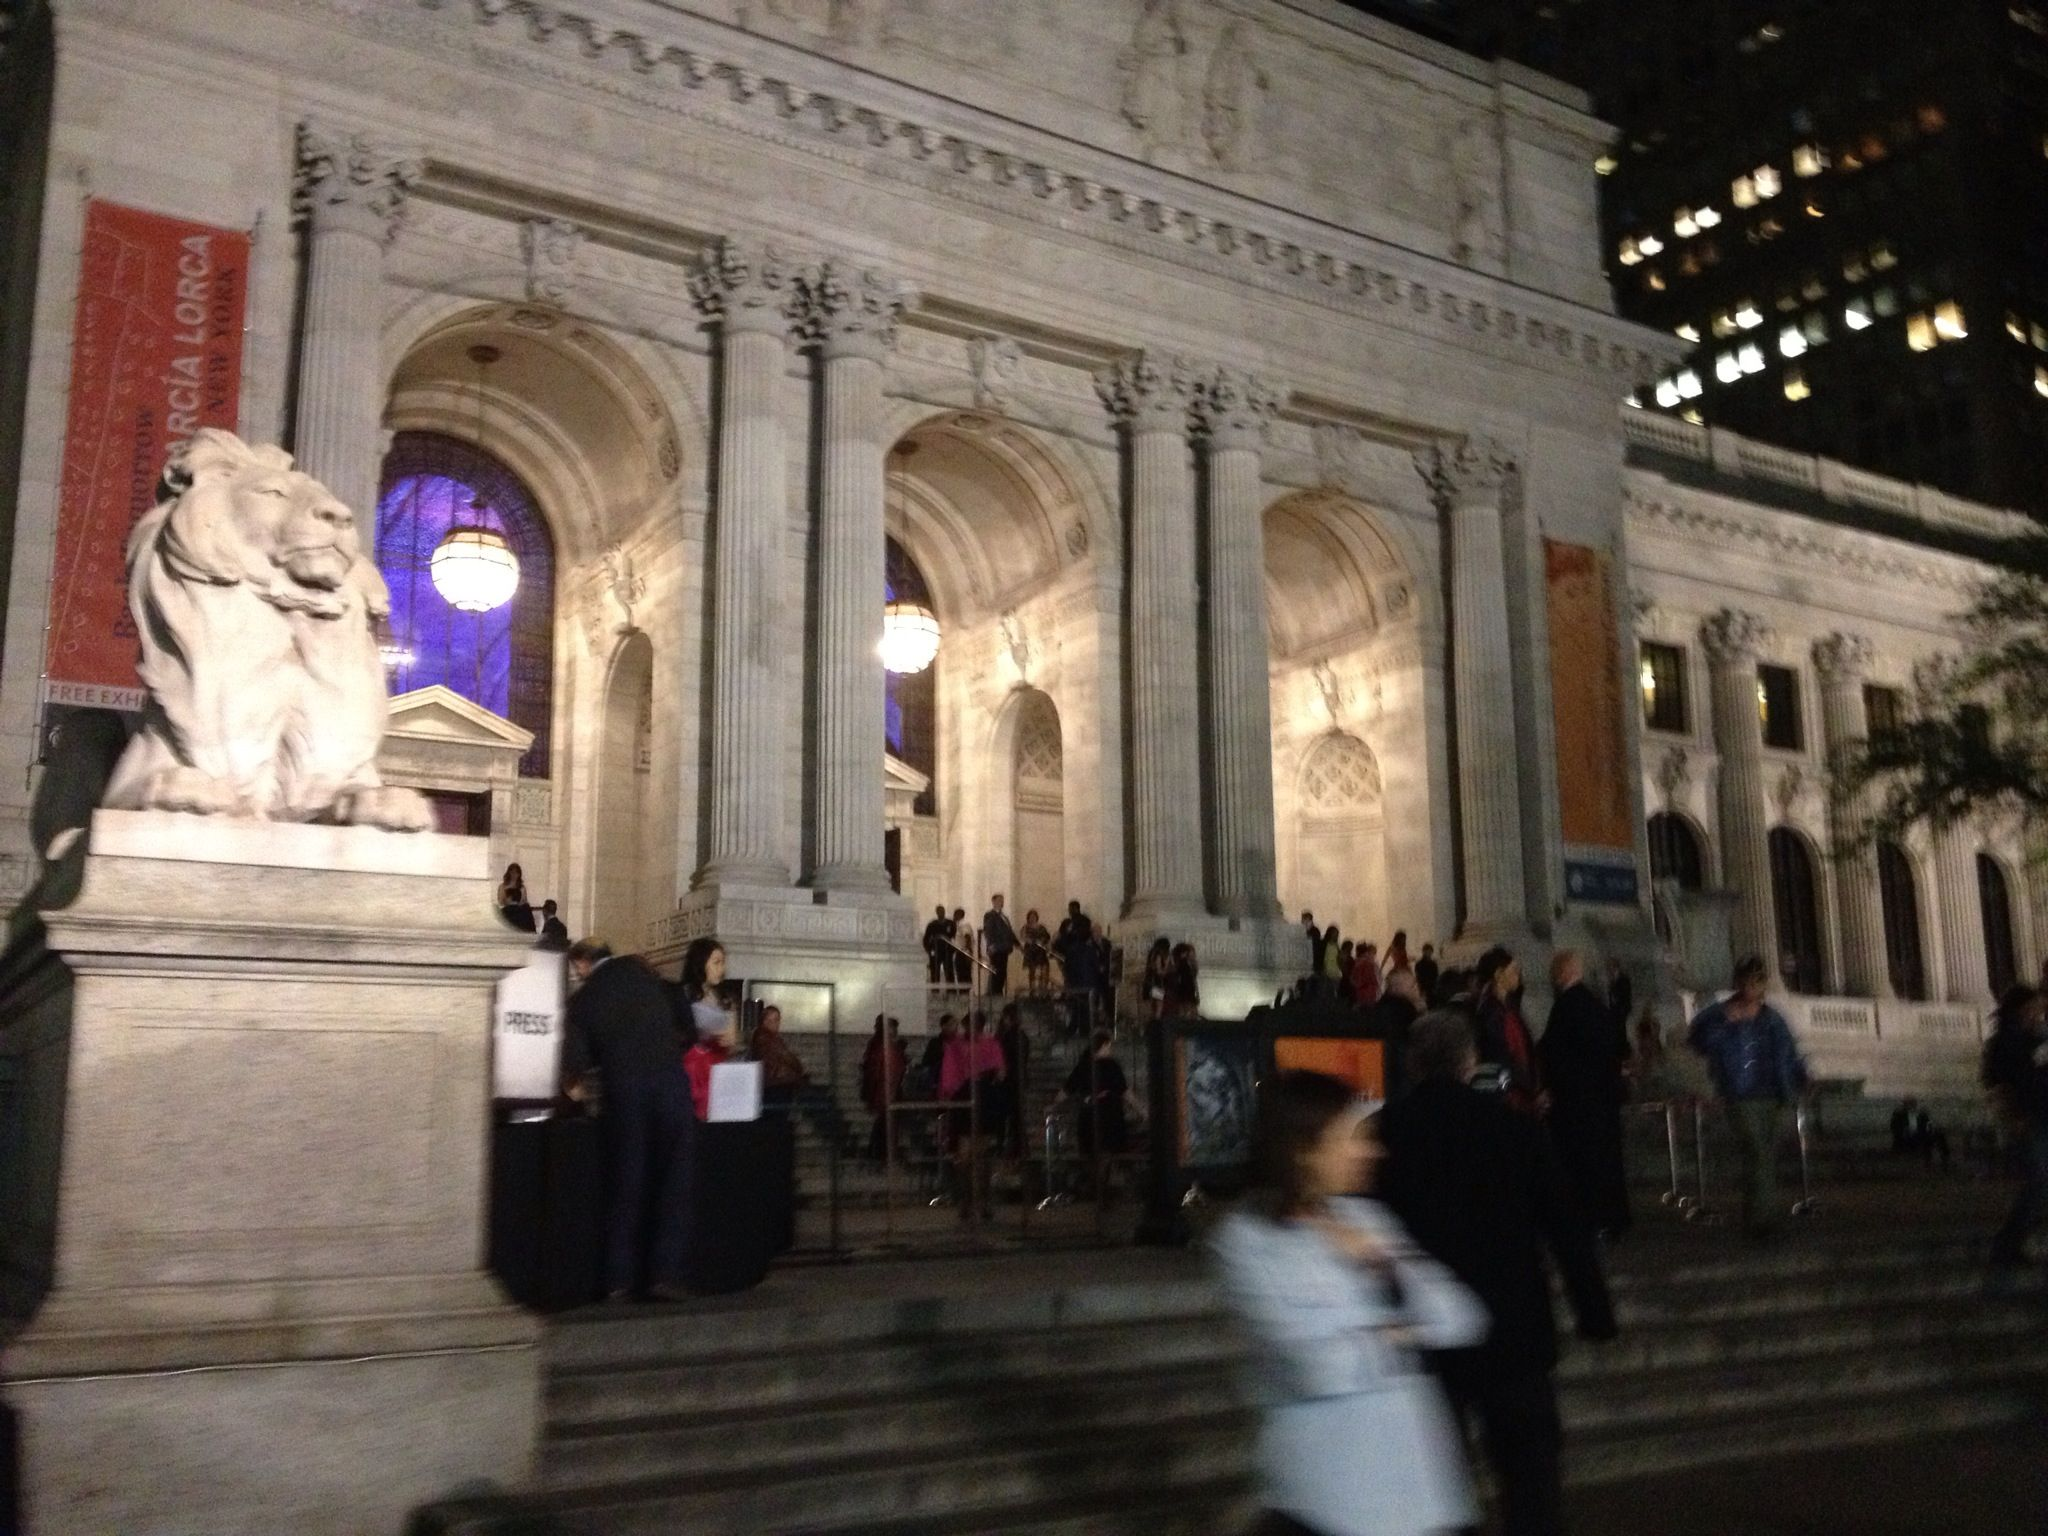 New York Public Library on Fifth Avenue